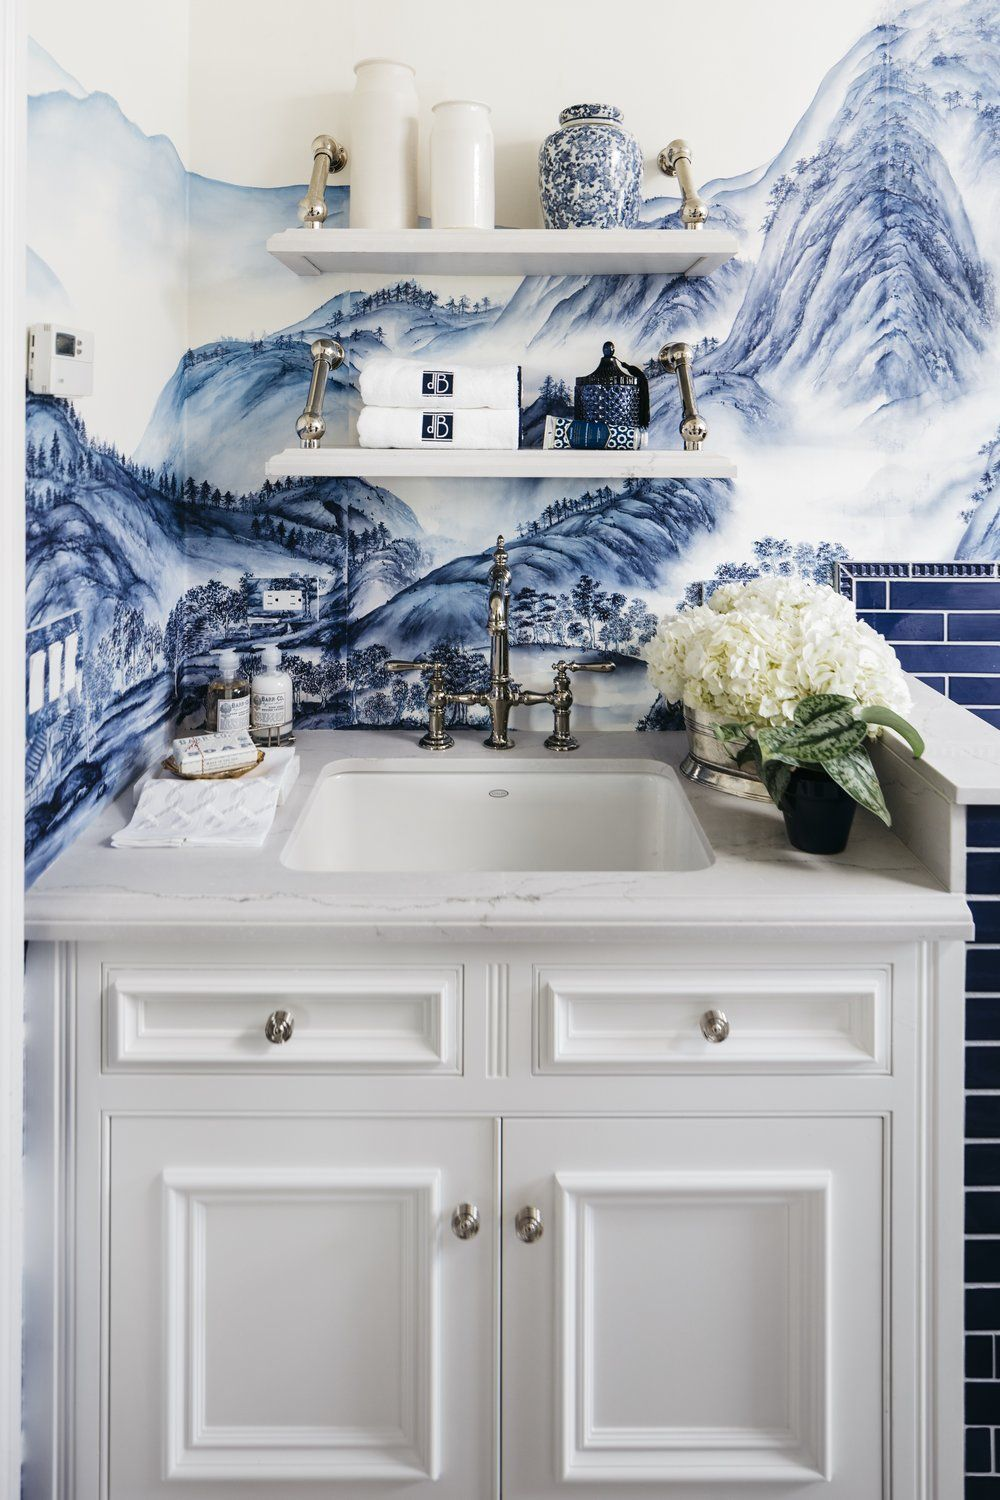 Laundry Room Wallpaper Incredible Laundry Room Makeoverfeatures Handpainted De Gournay